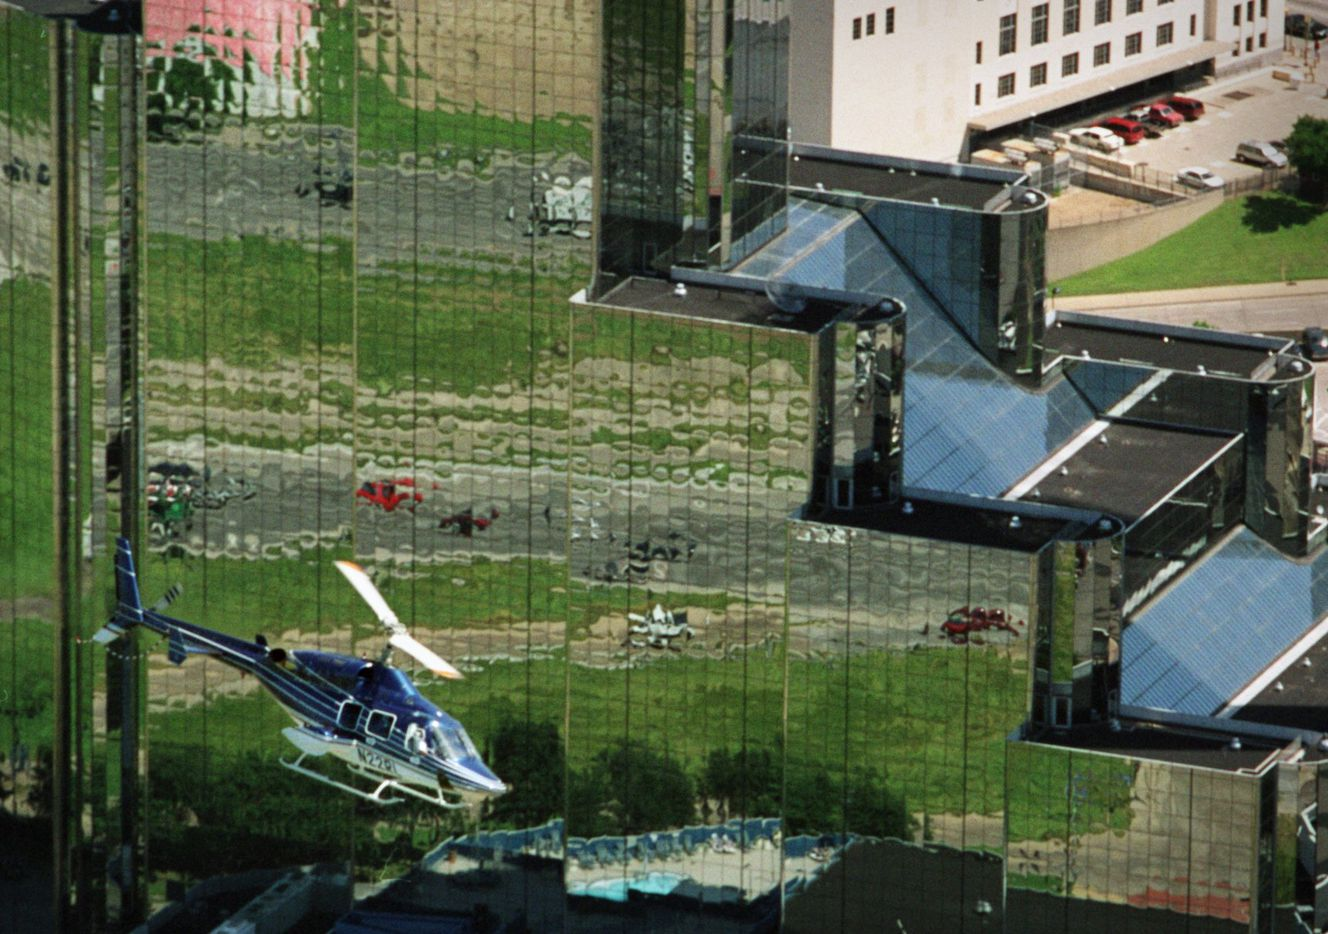 Boeing officials took a helicopter tour of Dallas in 2001, passing by the Hyatt Regency Dallas at Reunion, before deciding they'd really rather be in Chicago. (File Photo/The Dallas Morning News)